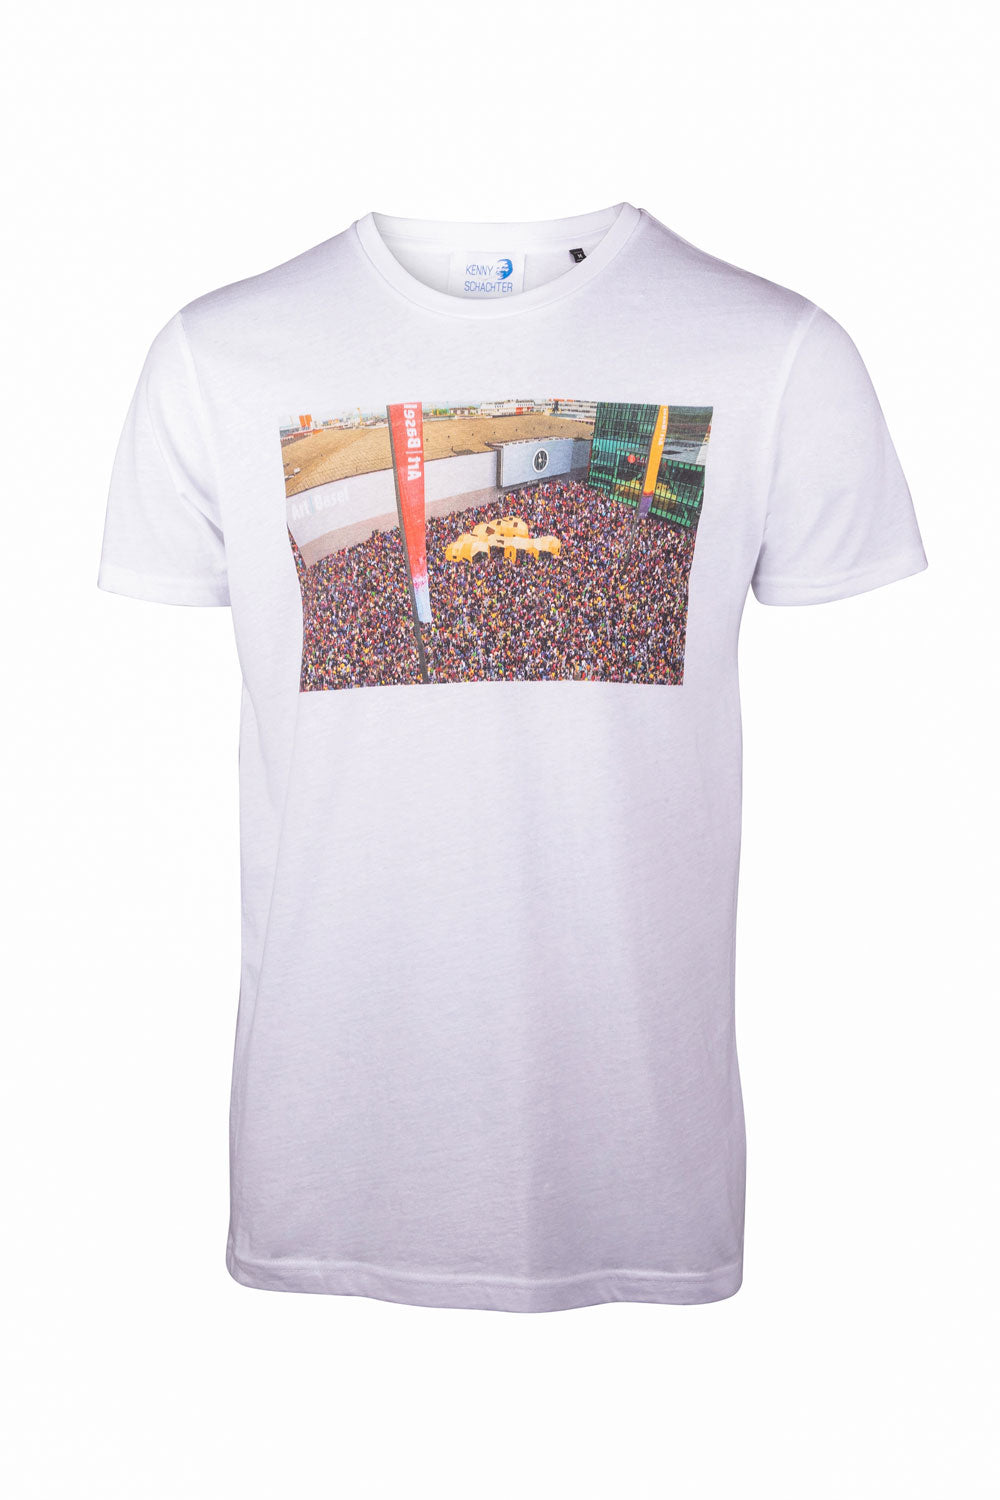 Kenny Schachter 'Basel Hajj' Graphic T-Shirt